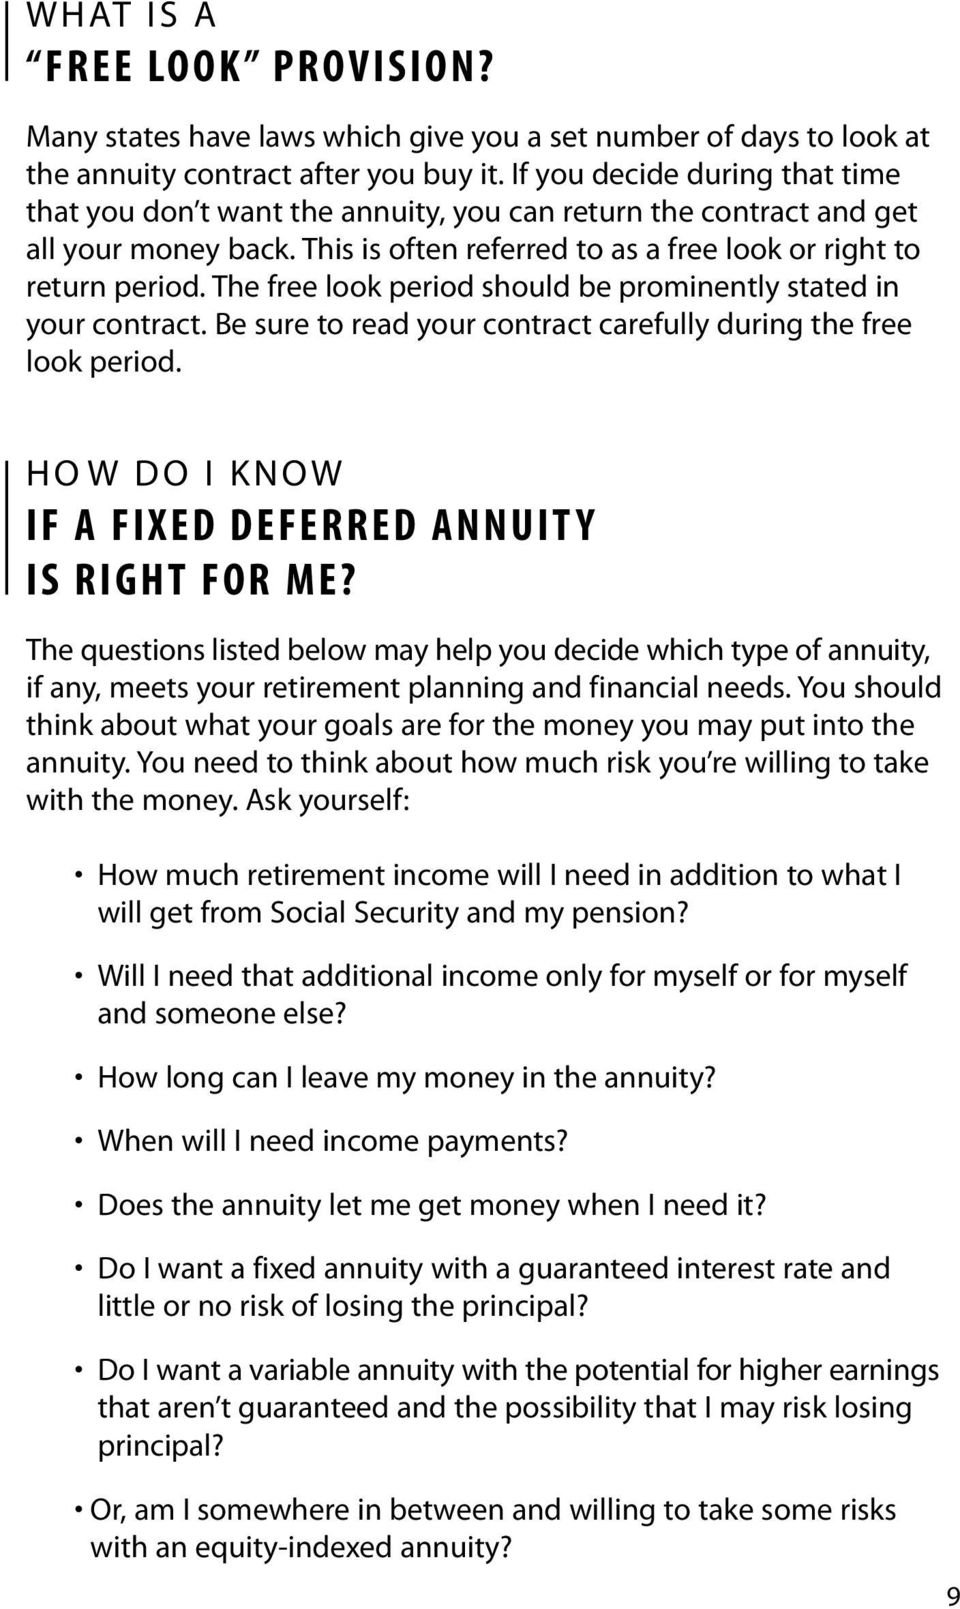 The free look period should be prominently stated in your contract. Be sure to read your contract carefully during the free look period. HOW DO I KNOW IF A FIXED DEFERRED ANNUITY IS RIGHT FOR ME?